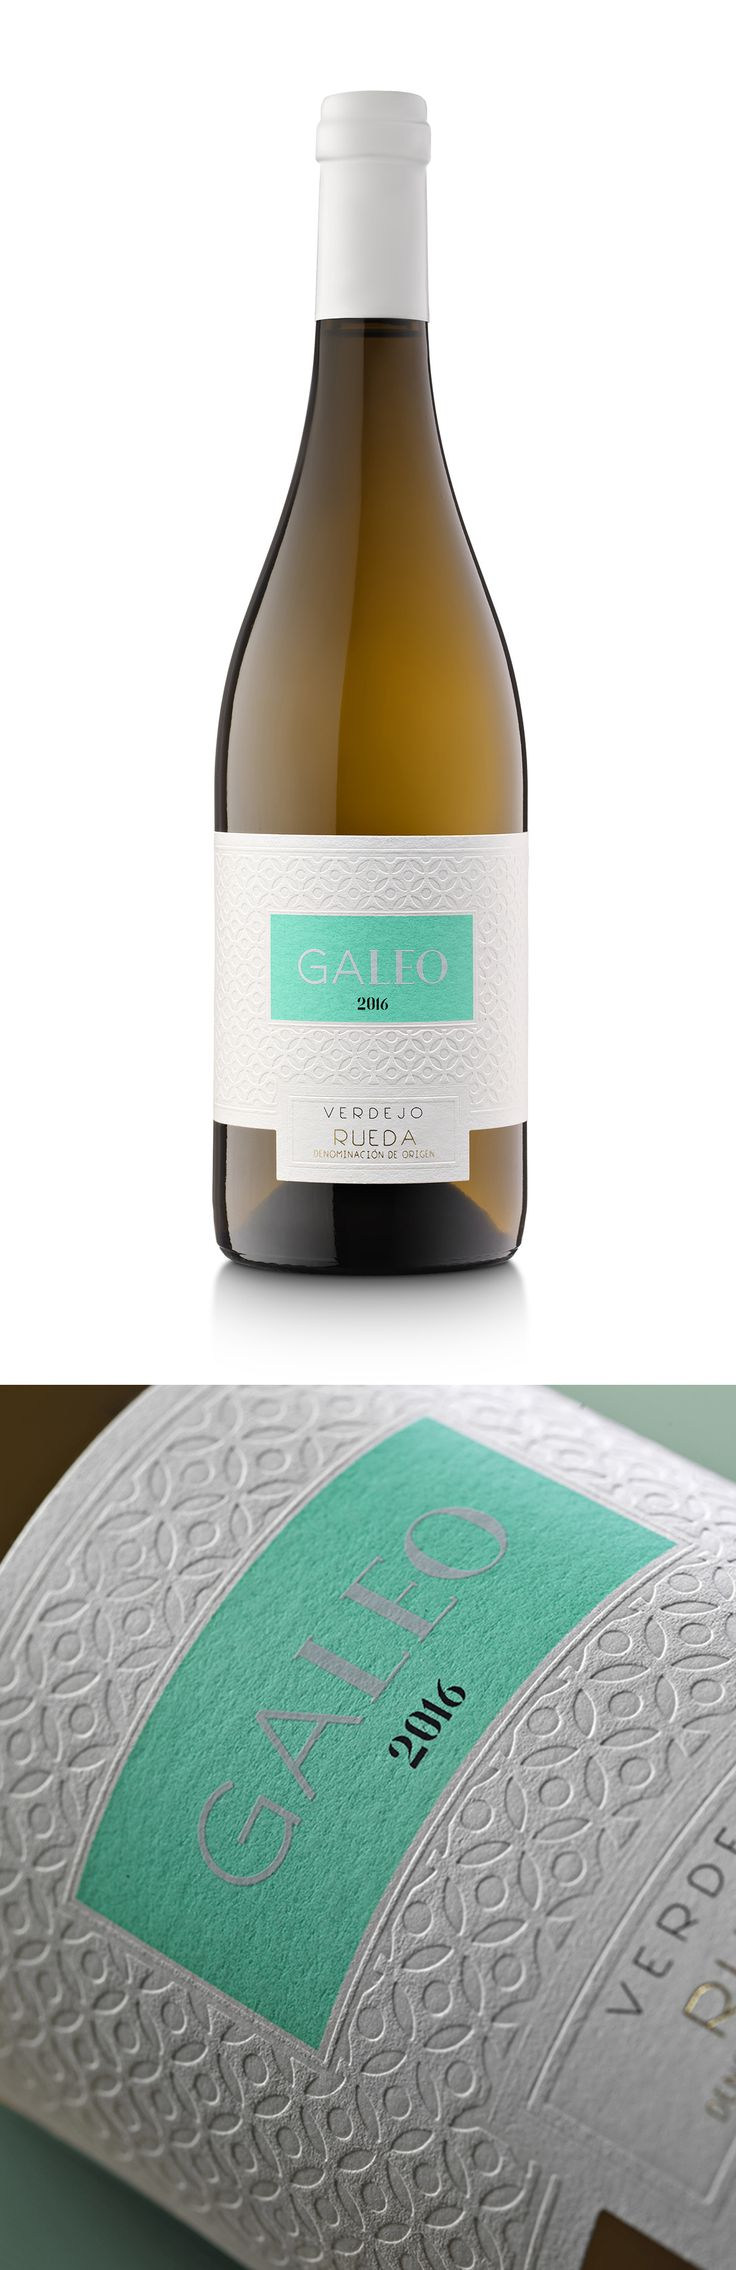 GALEO WINE Design by www.pagadisseny.com